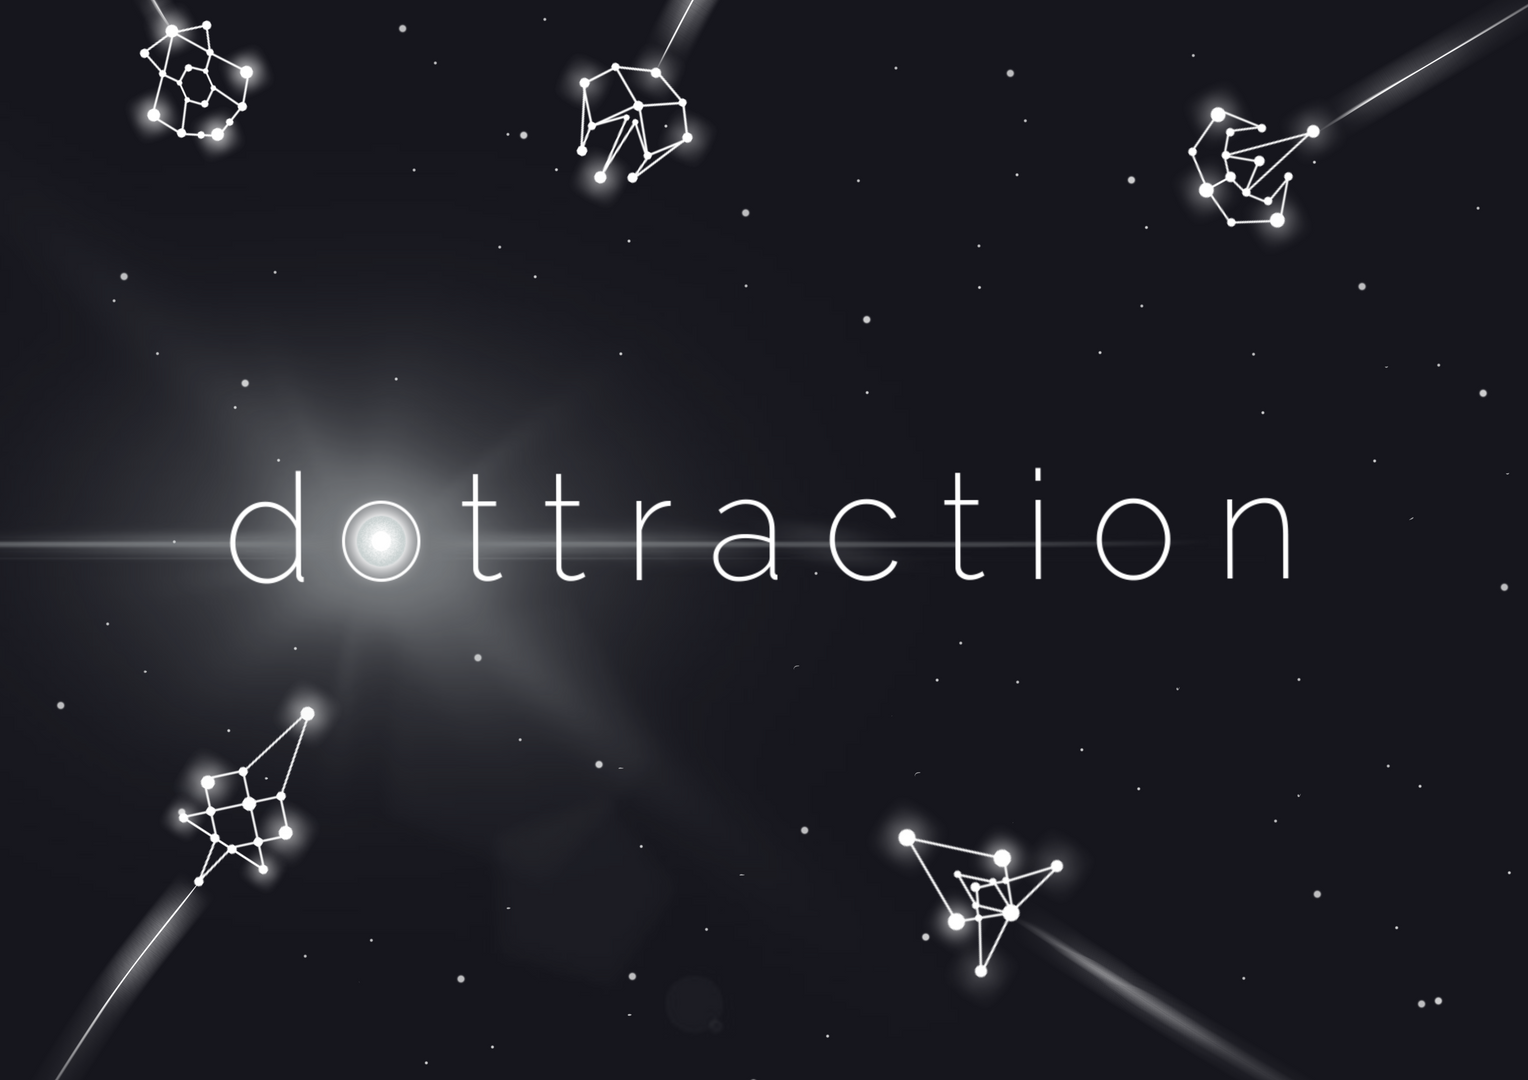 Dottraction.png